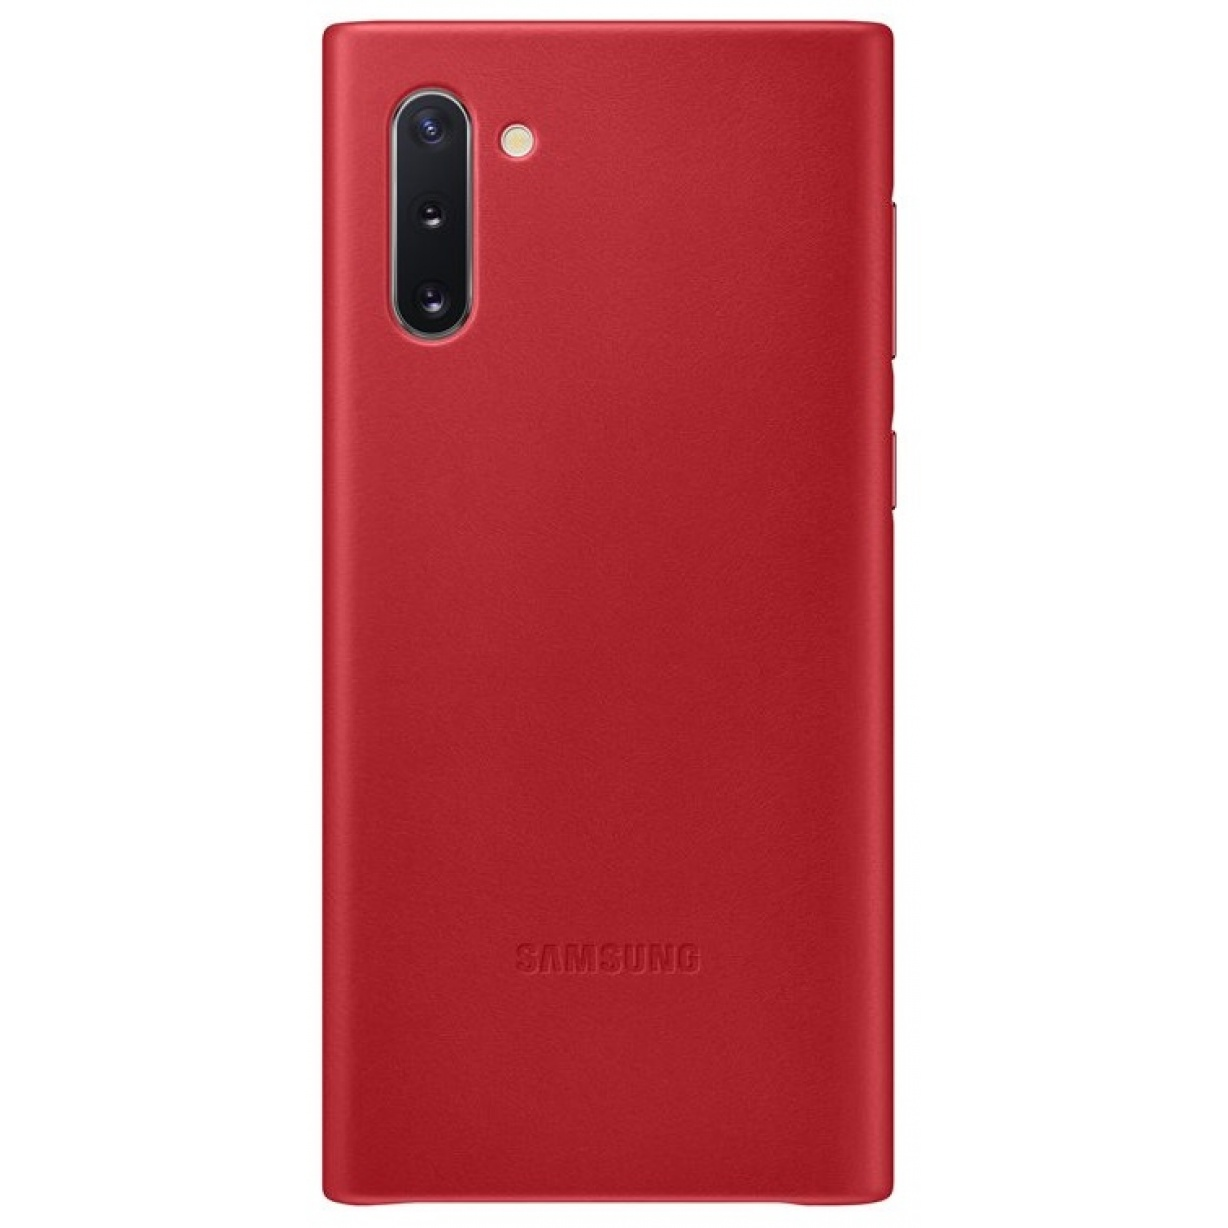 Nugarėlė N970 Samsung Galaxy Note 10 Leather Cover Red